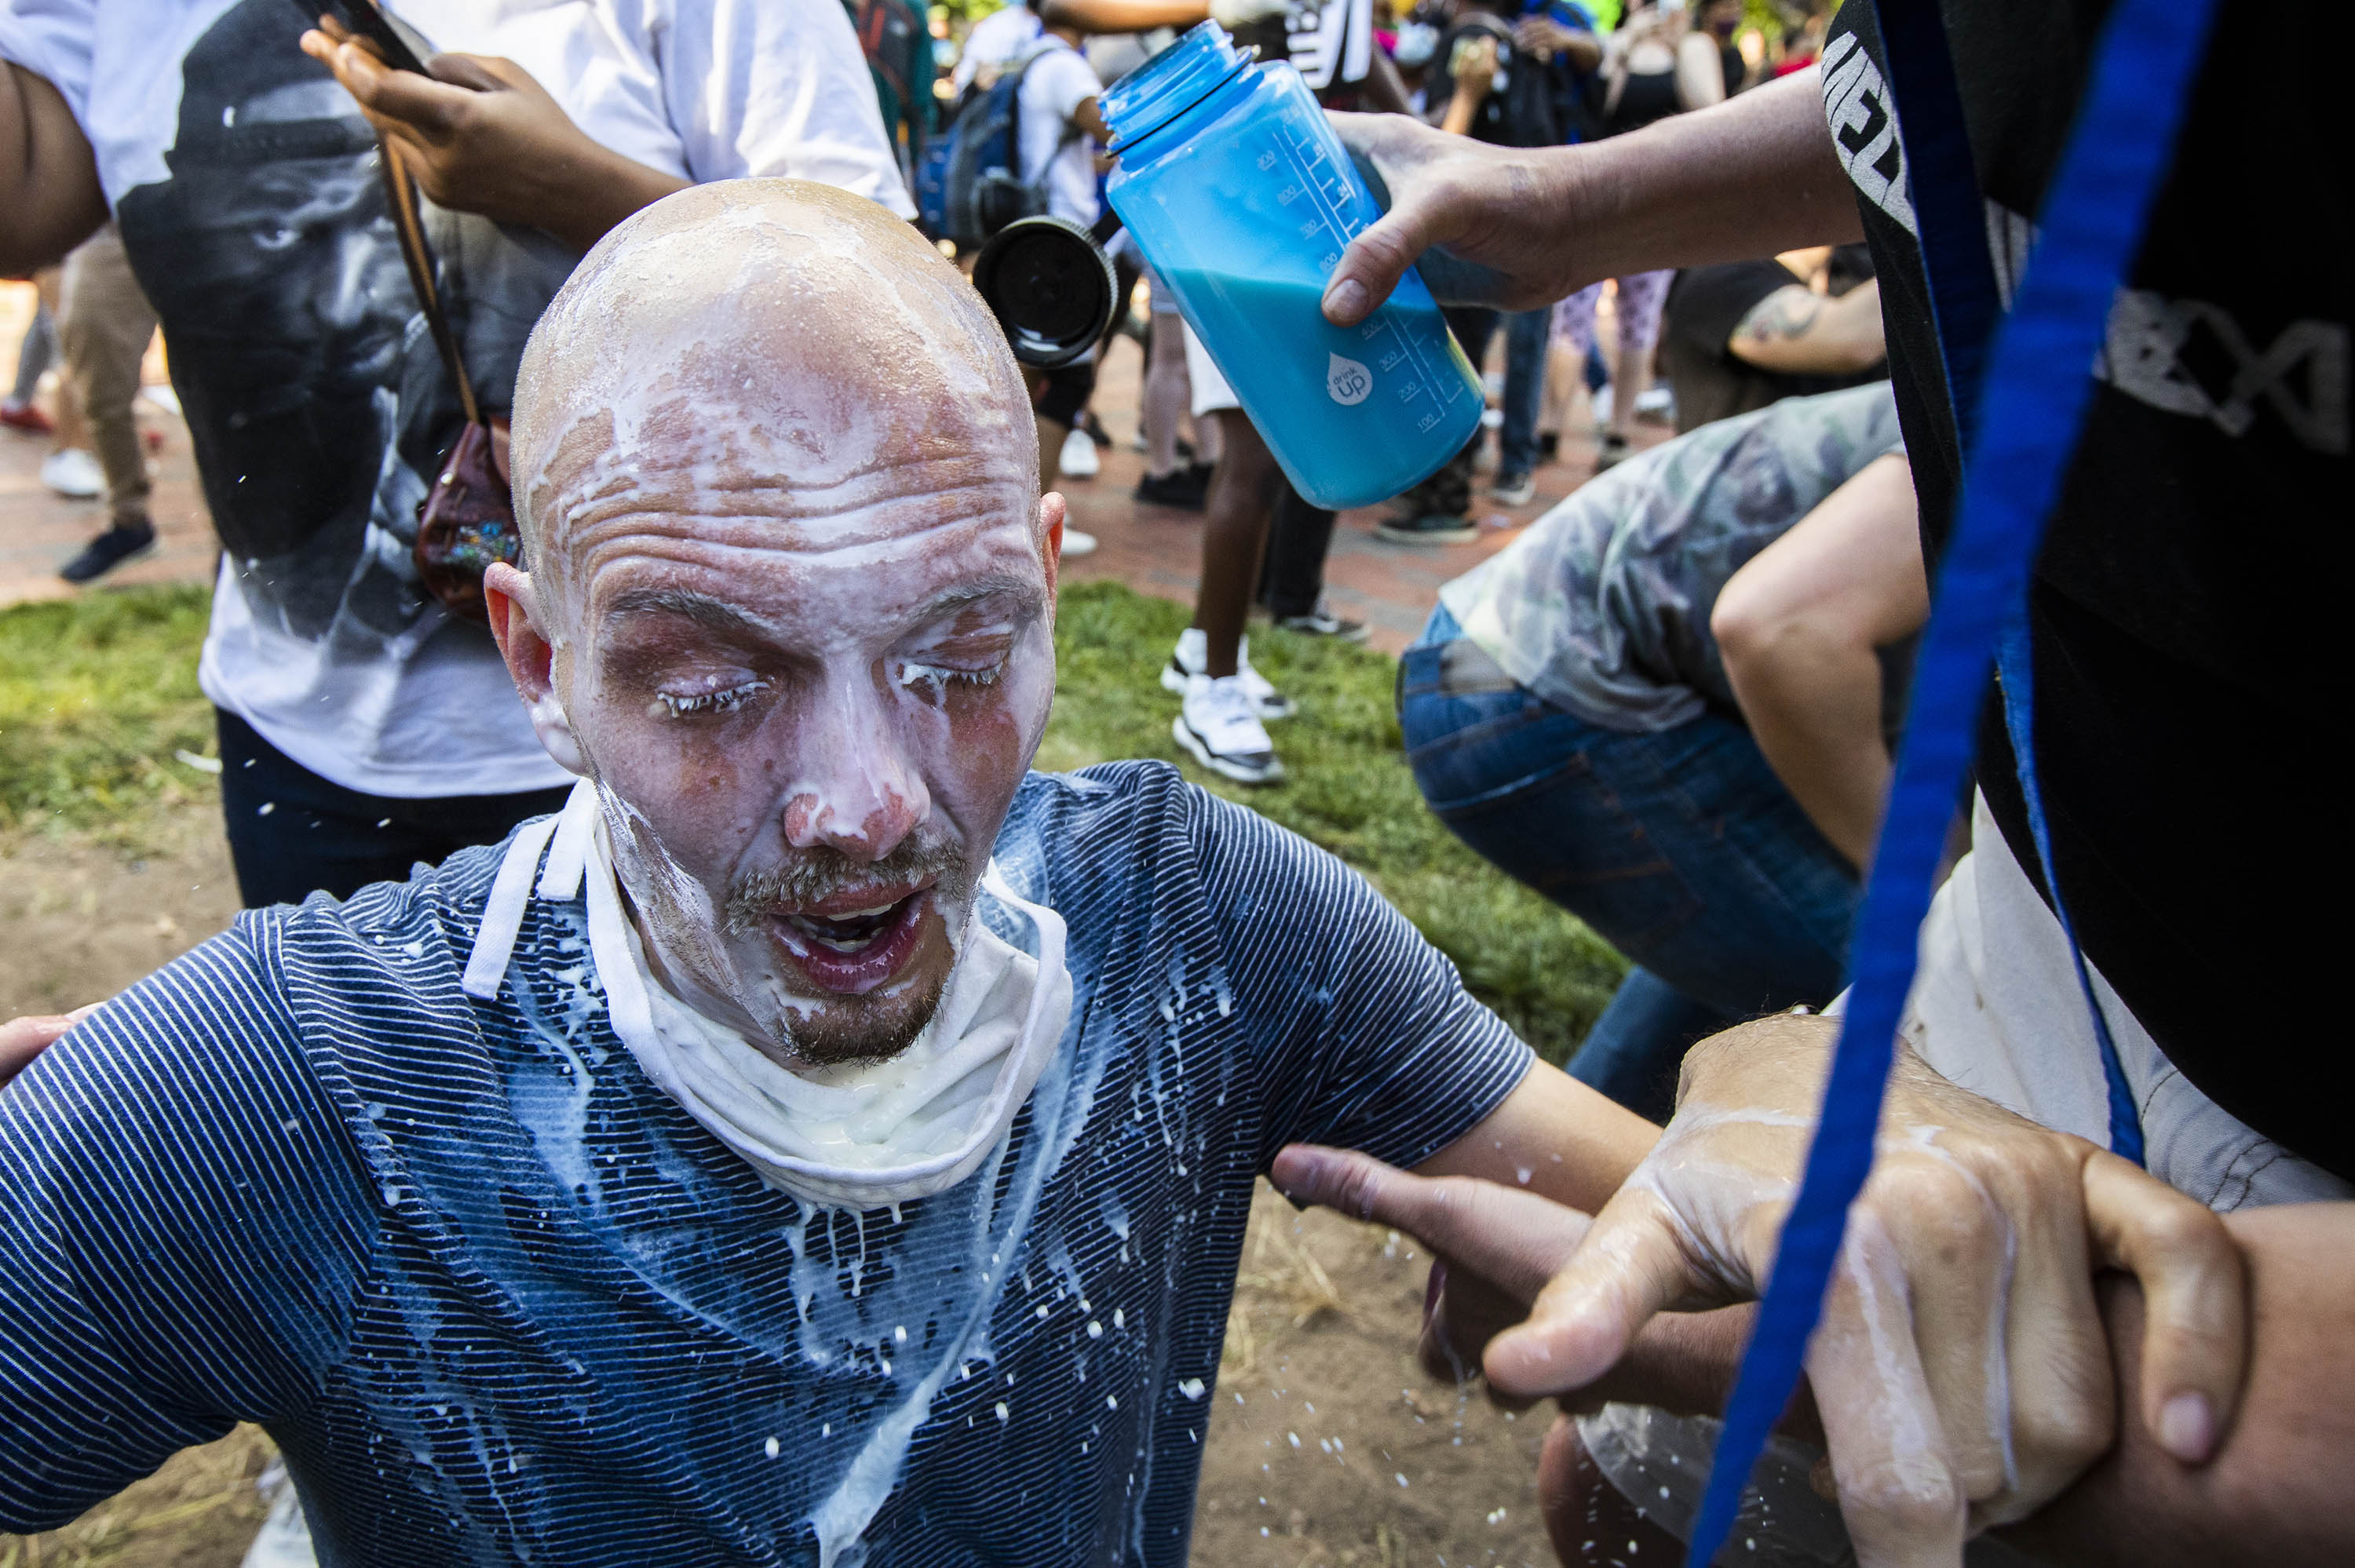 Milk is poured into a demonstrator's eyes to neutralize the effect of pepper spray during a rally at Lafayette Park near the White House in Washington D.C., on Sunday, May 31.